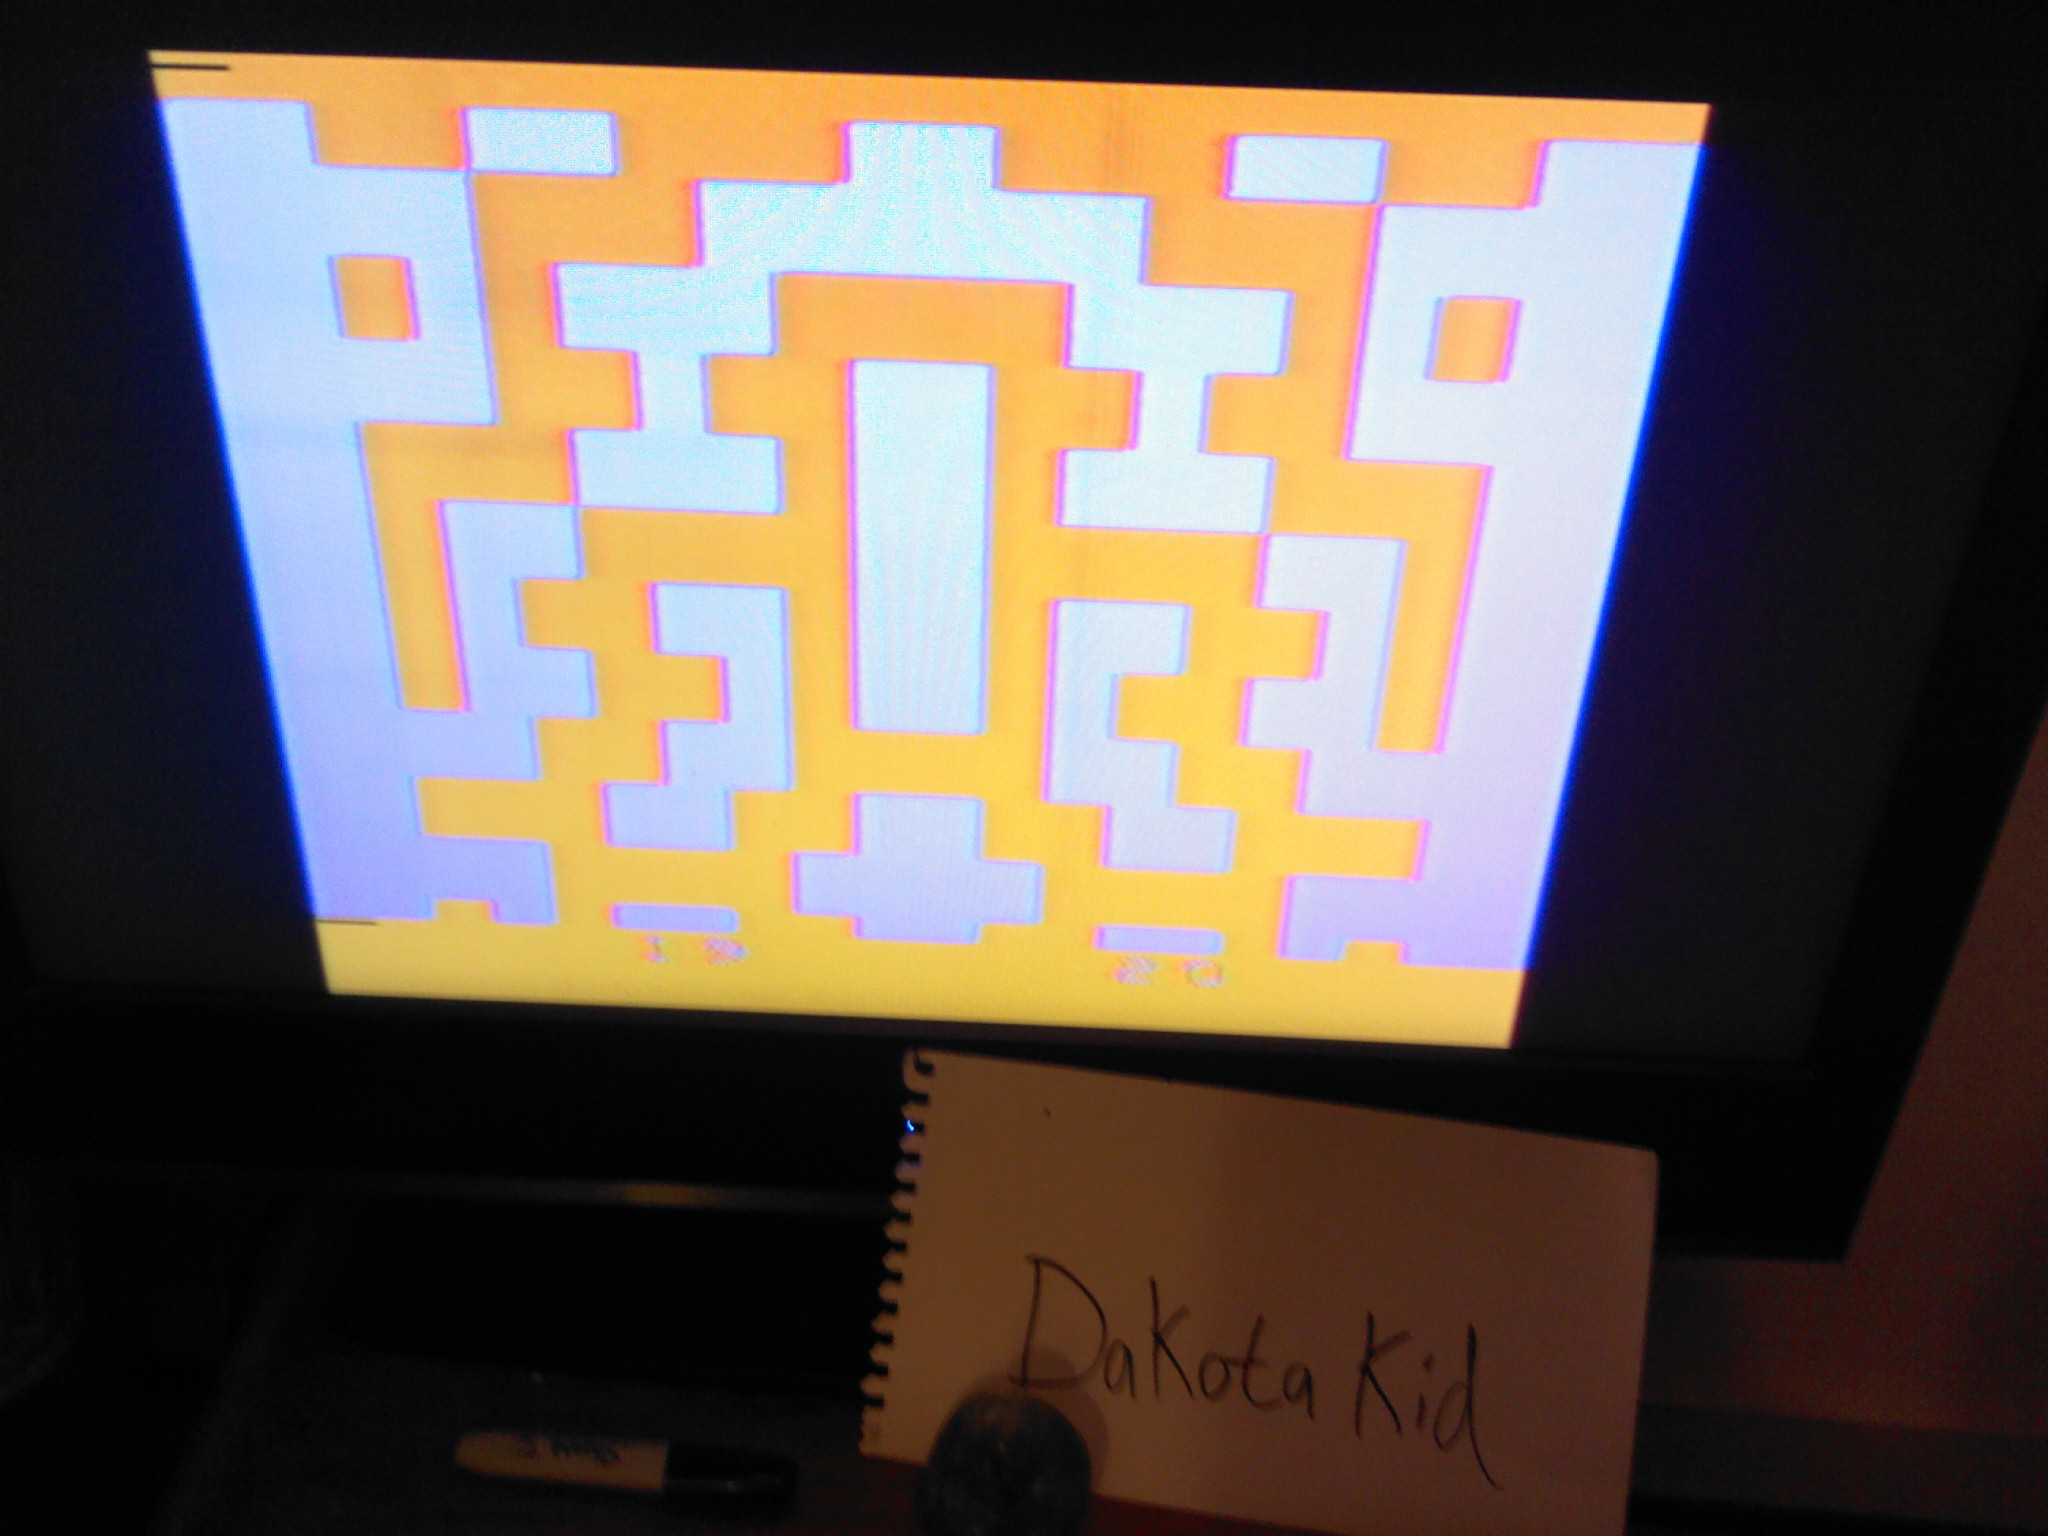 DakotaKid: Entombed (Atari 2600 Novice/B) 20 points on 2014-05-17 20:49:58